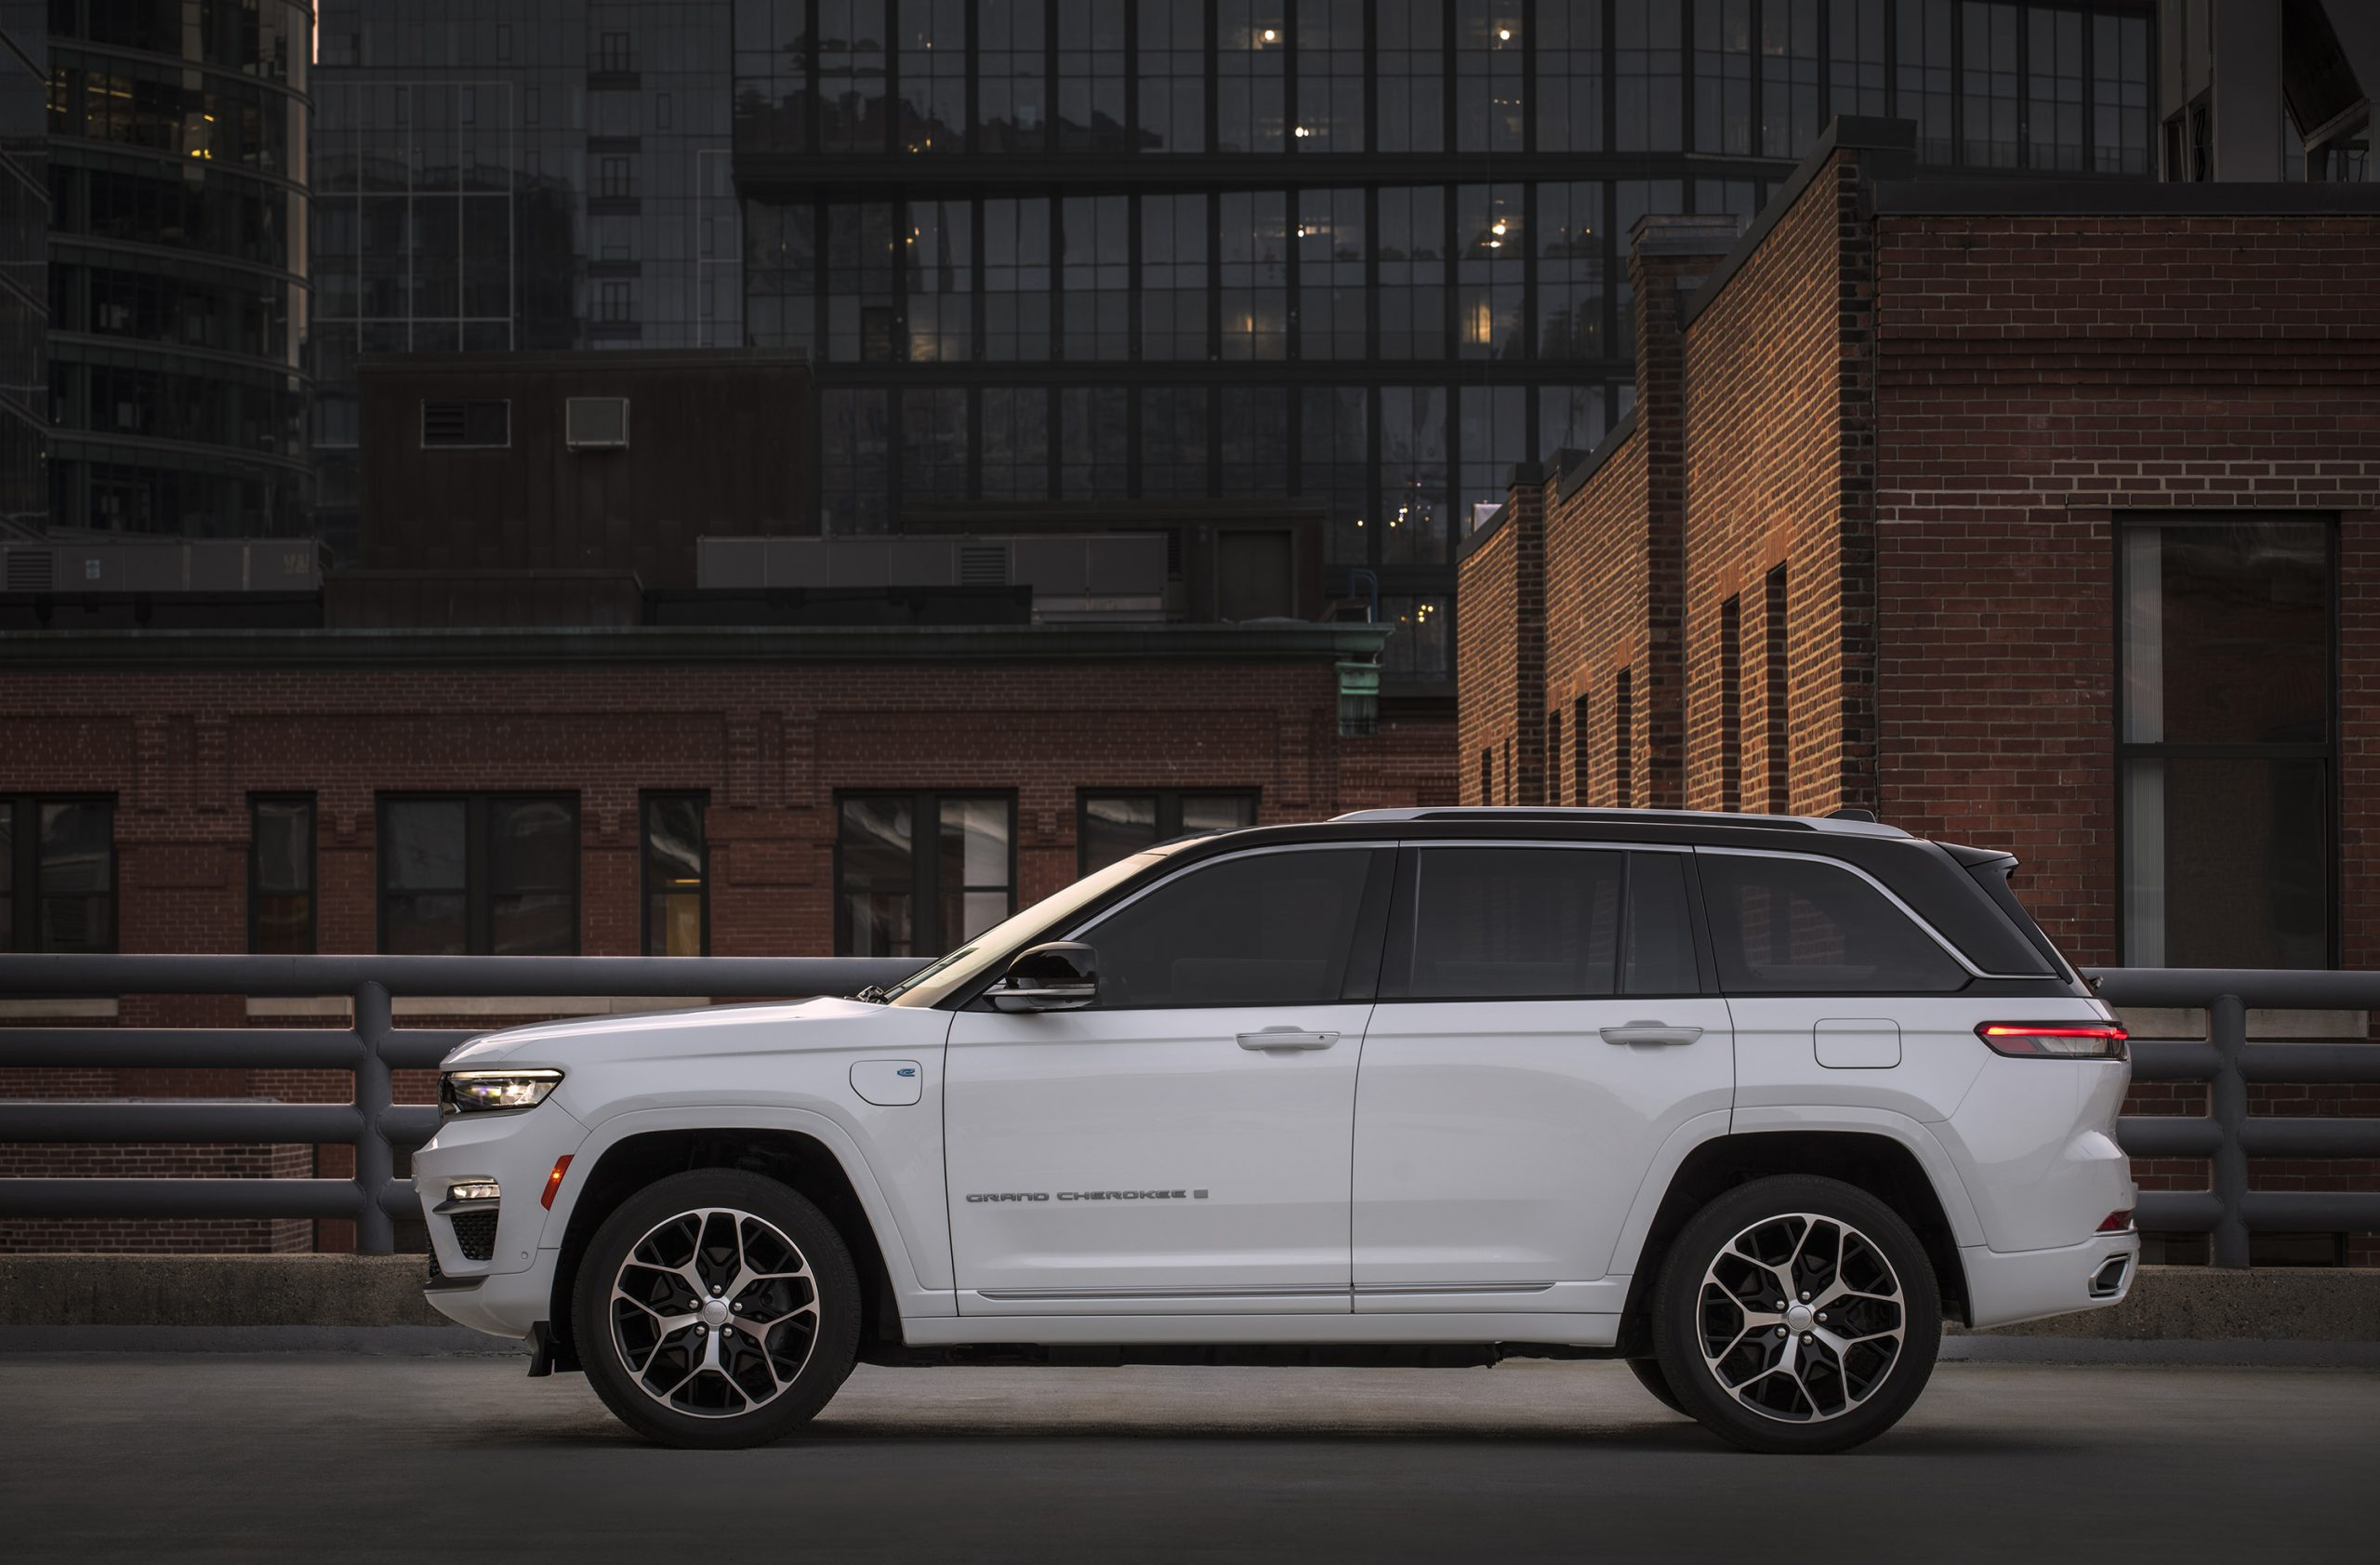 2022 Jeep Grand Cherokee Summit Reserve 4xe side profile